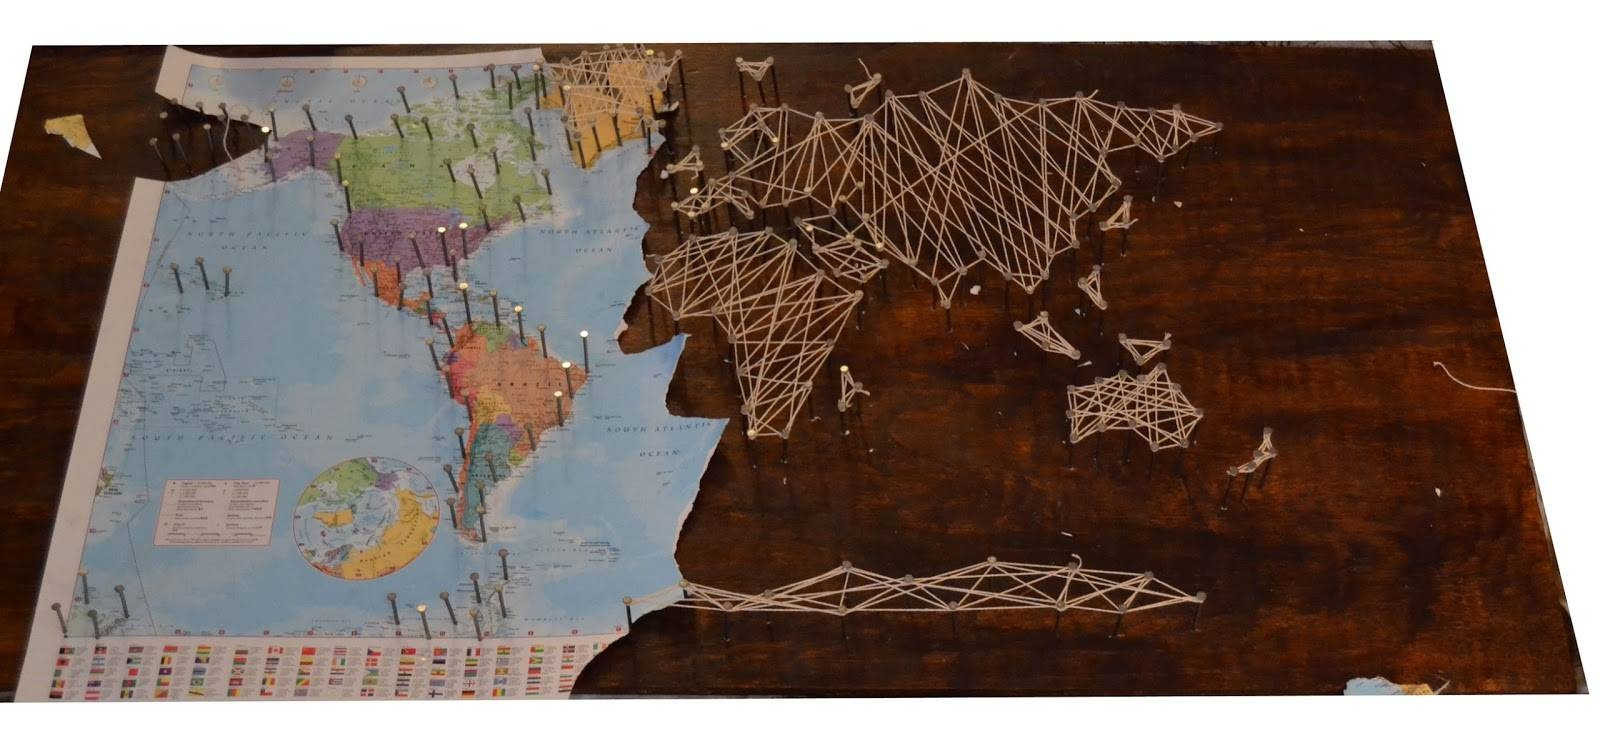 The Crafty Novice: Diy: String Art World Map With Regard To Best And Newest String Map Wall Art (View 3 of 20)